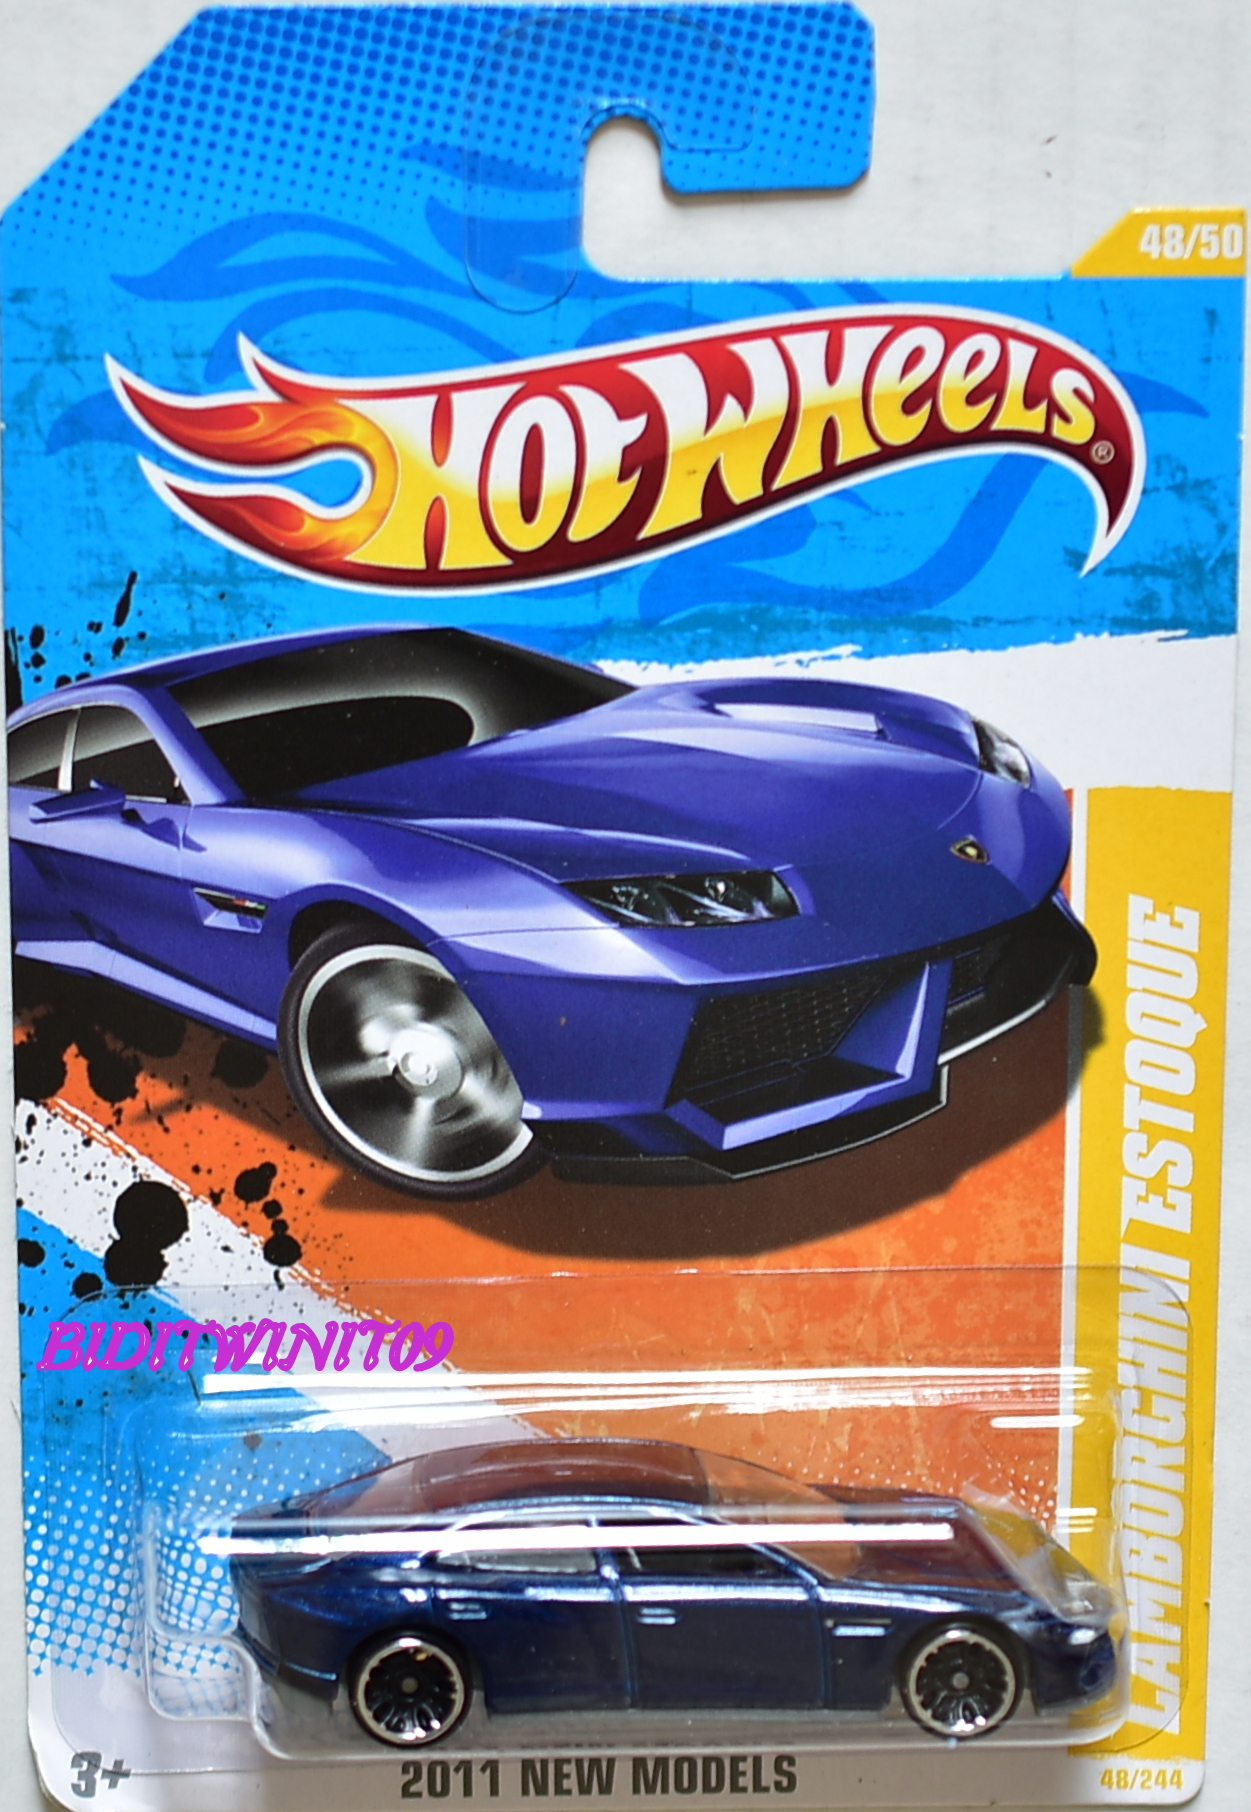 HOT WHEELS 2011 NEW MODELS LAMBORGHINI ESTOQUE #48/50 BLUE E+